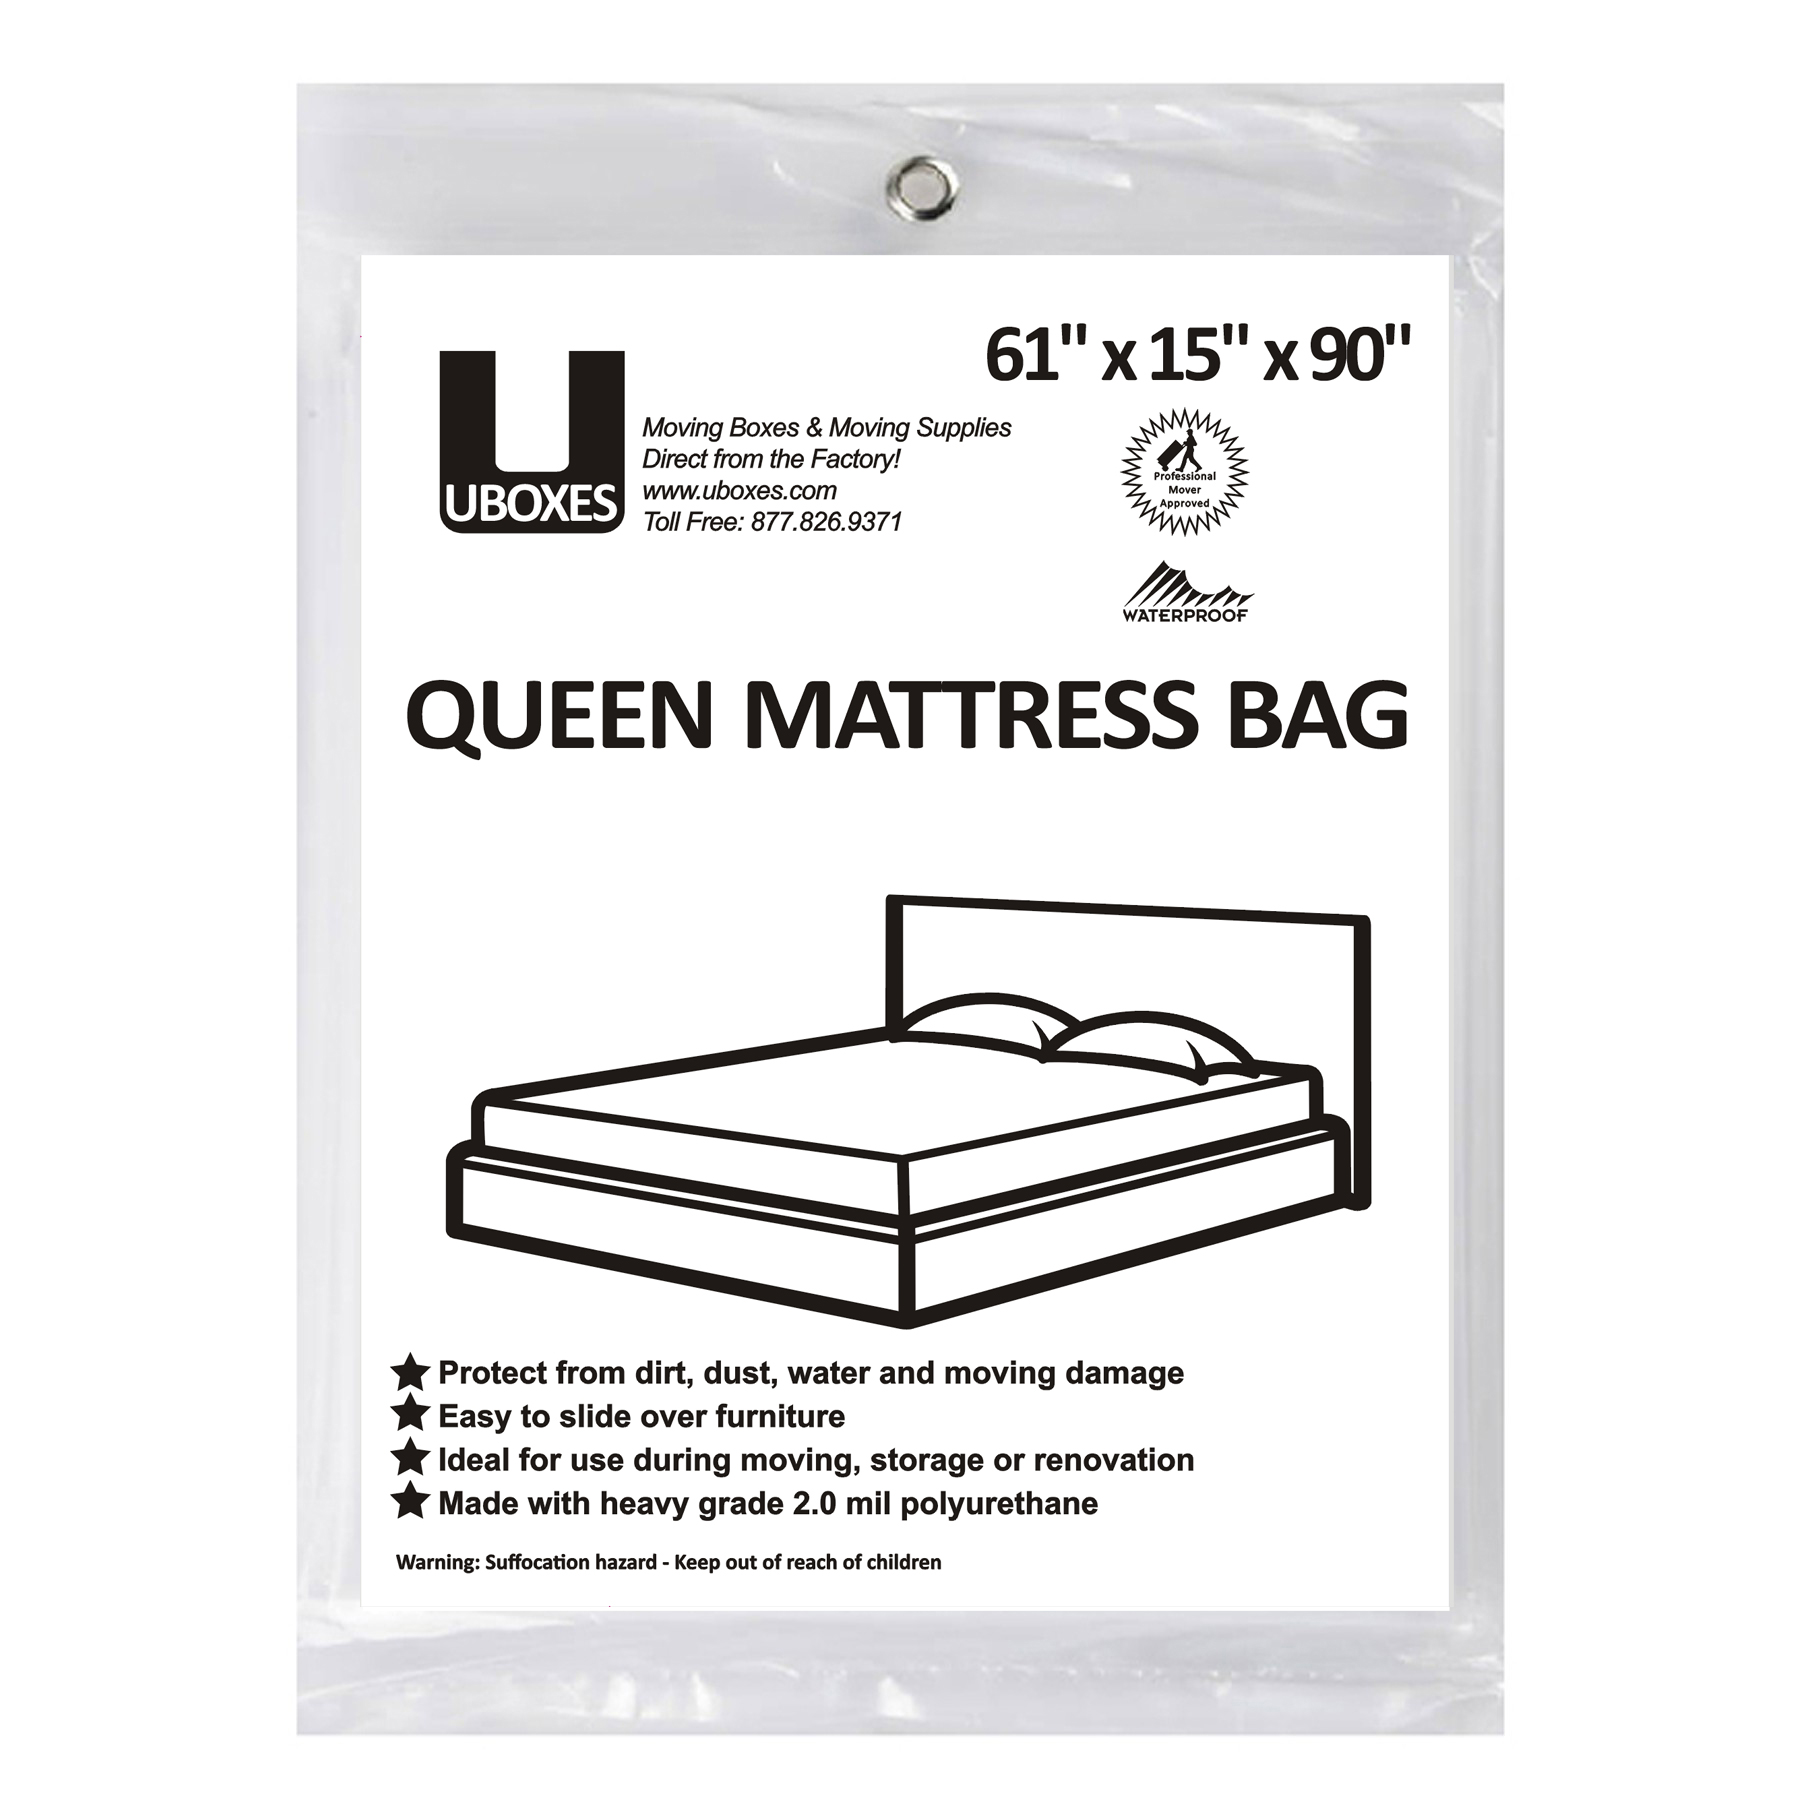 Uboxes Queen Mattress Poly Covers, 61 x 15 x 90 in, 1 Pack